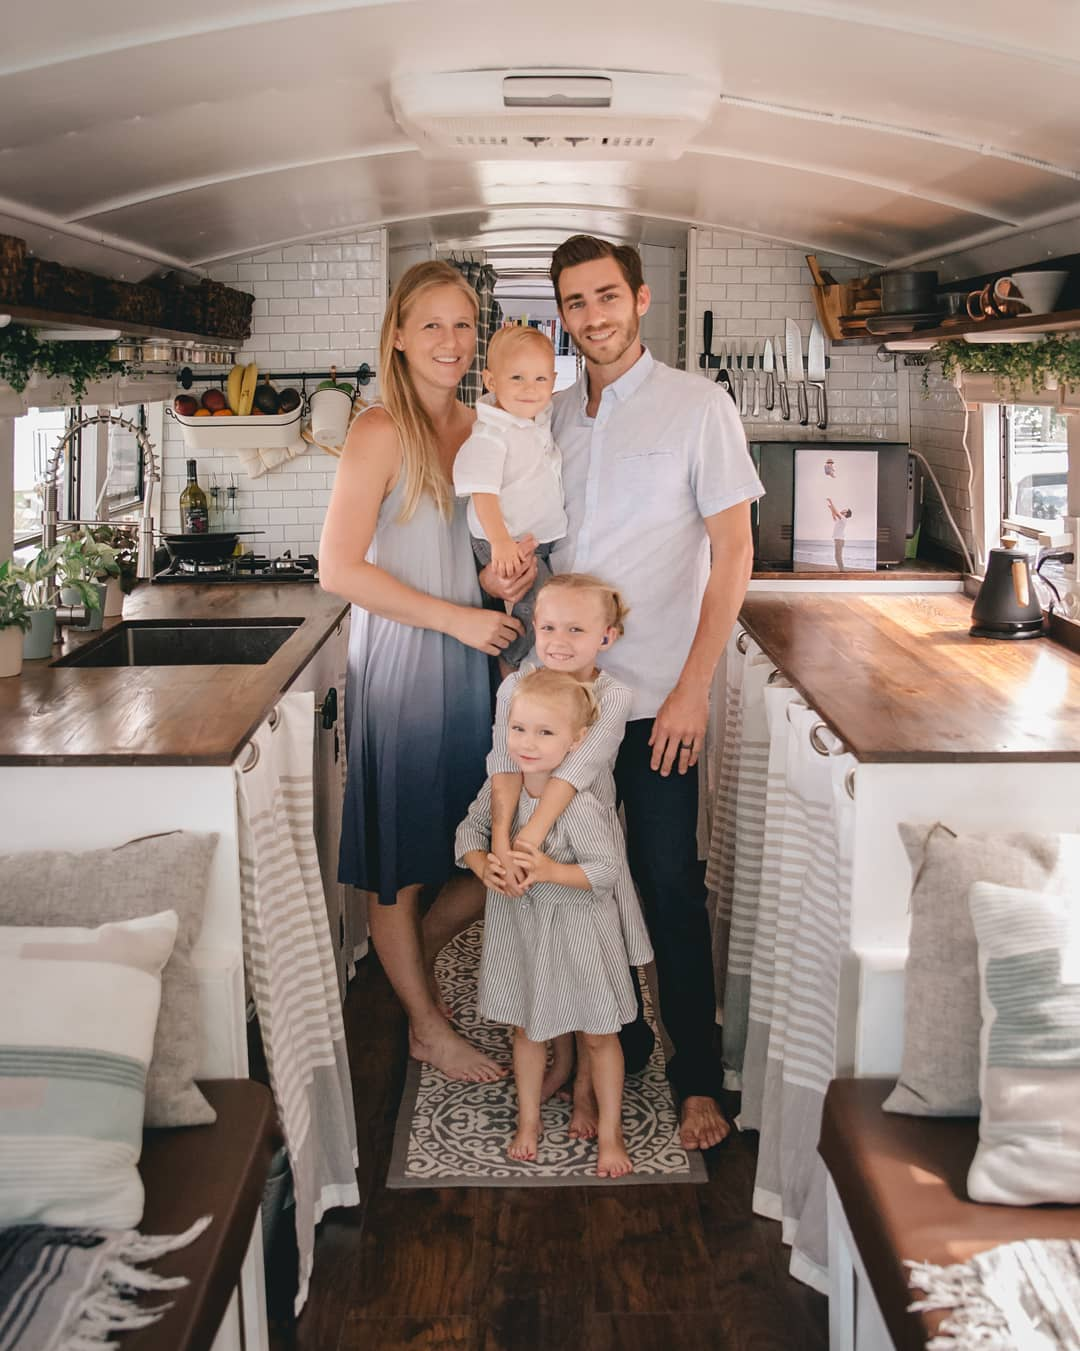 Family Of 5 Live And Travel In DIY Bus Conversion, Going Debt Free.